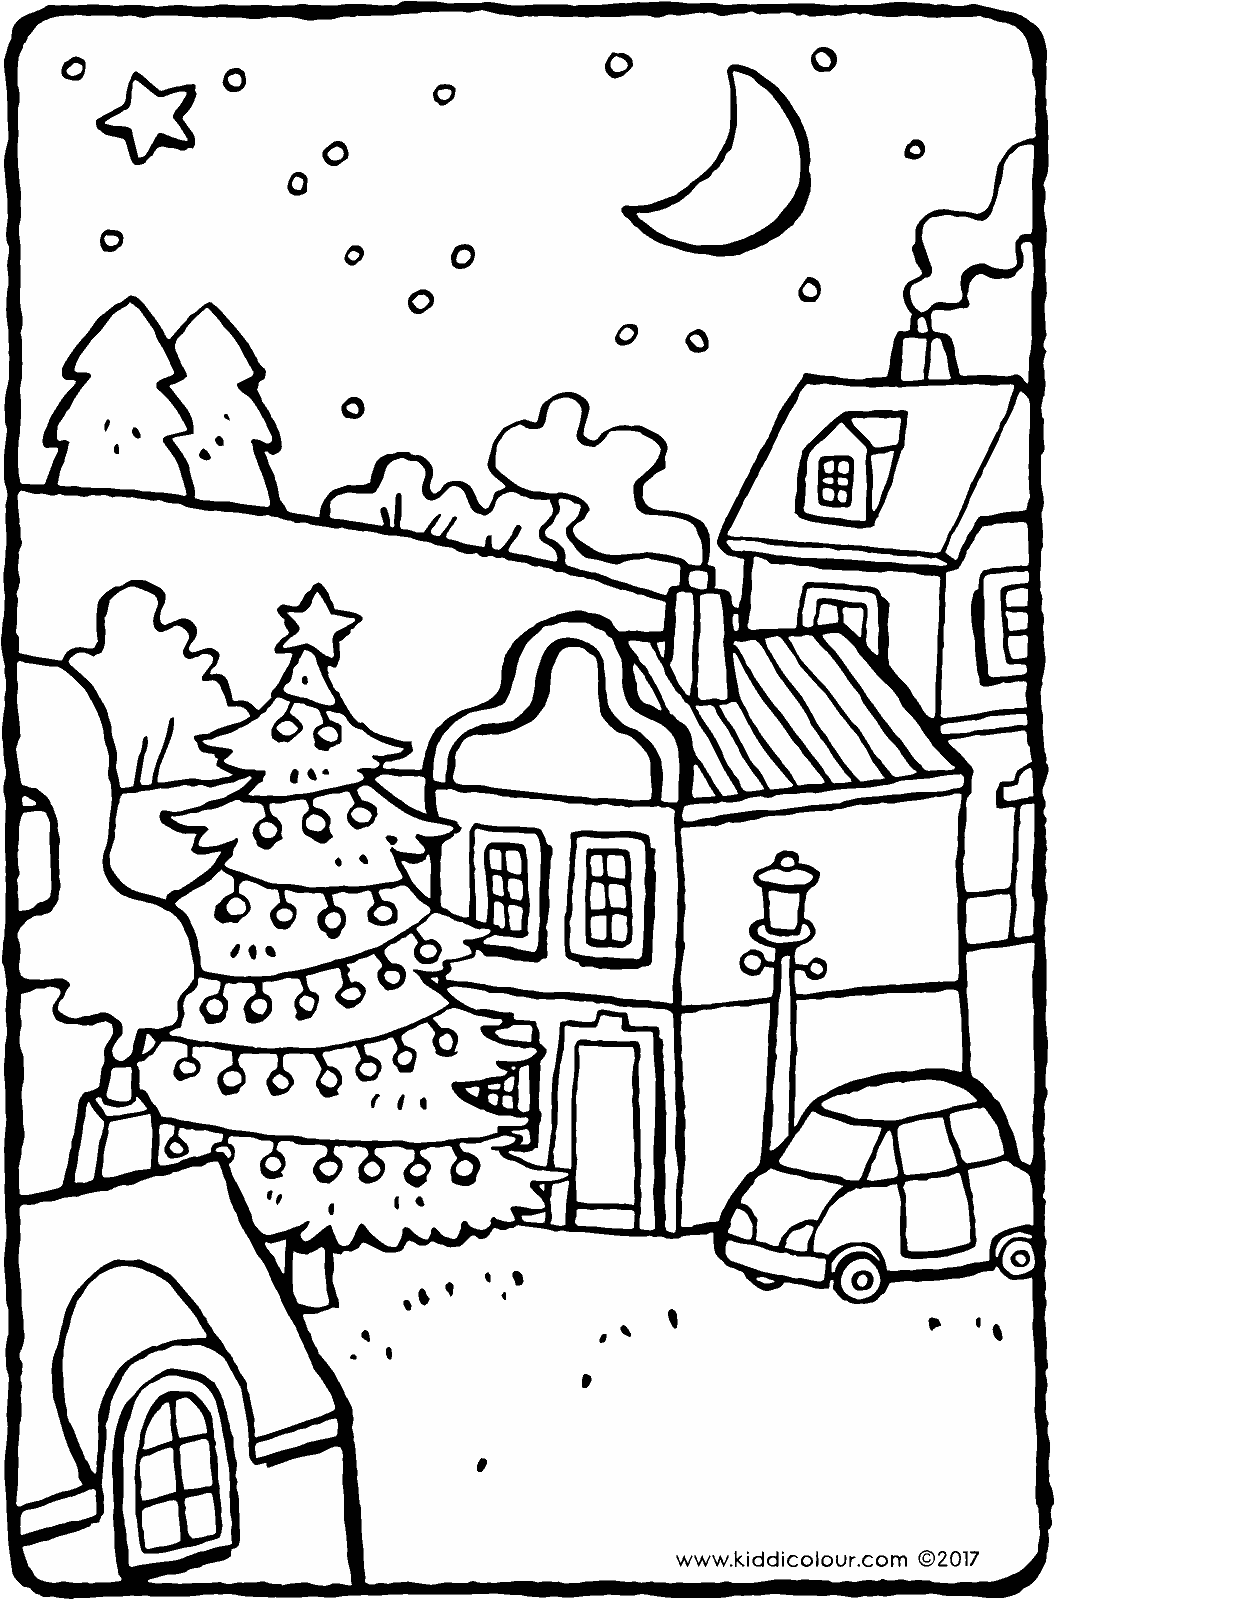 Christmas tree in the village colouring page page drawing picture 01H